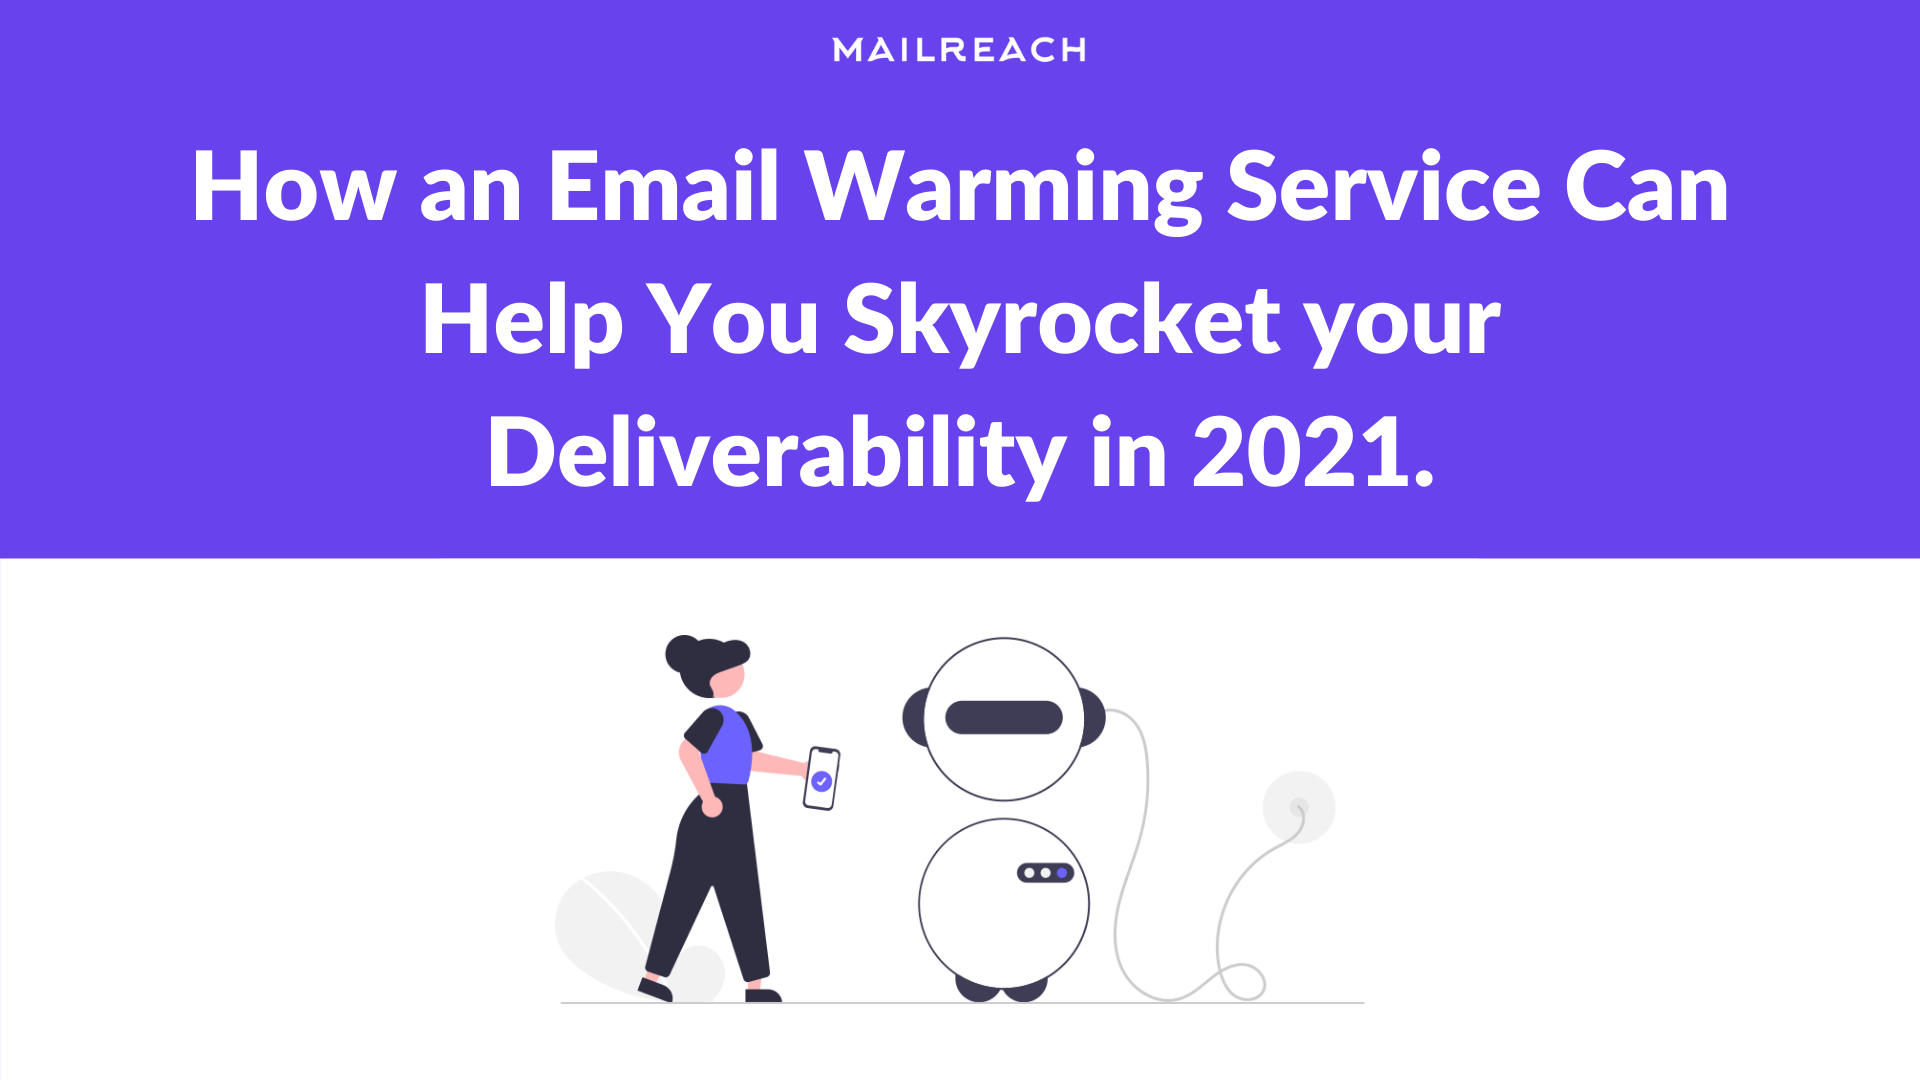 An Email Warming Service Can Help You Skyrocket your Deliverability